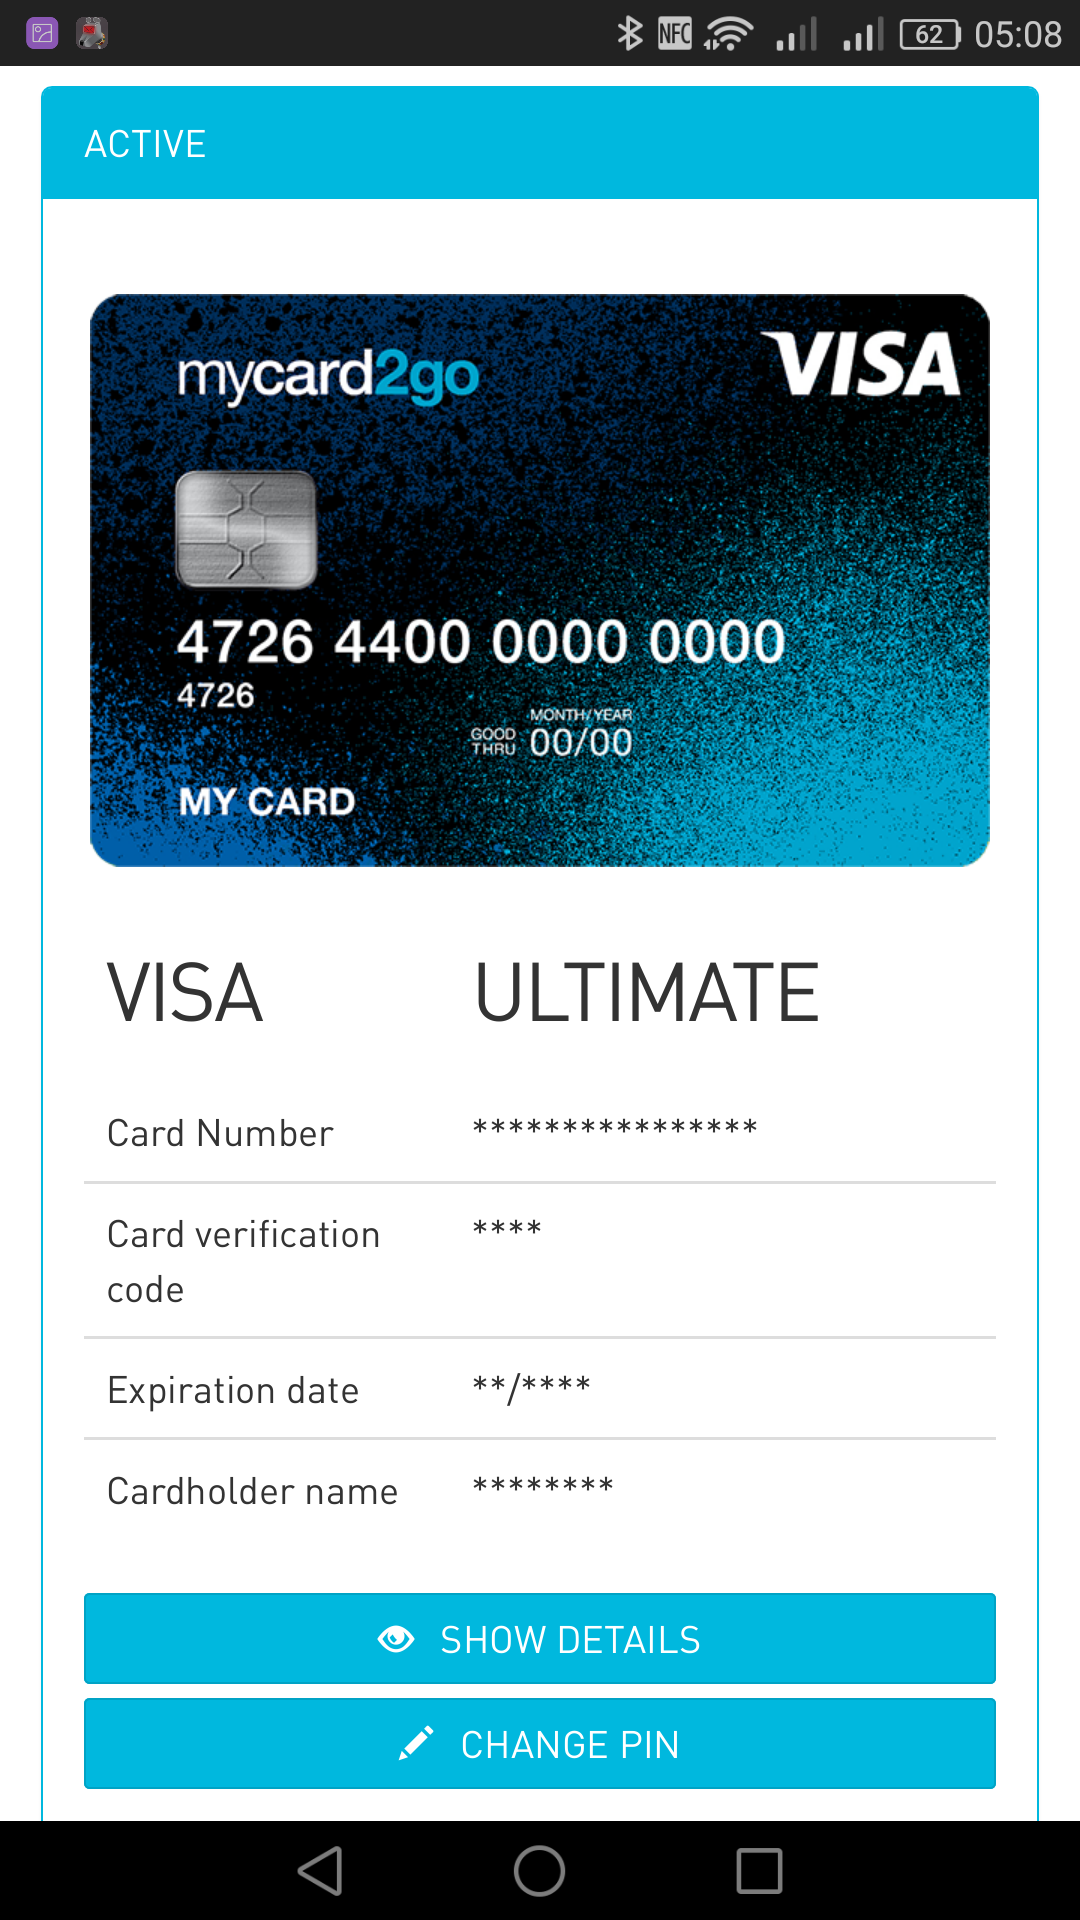 My Card2go